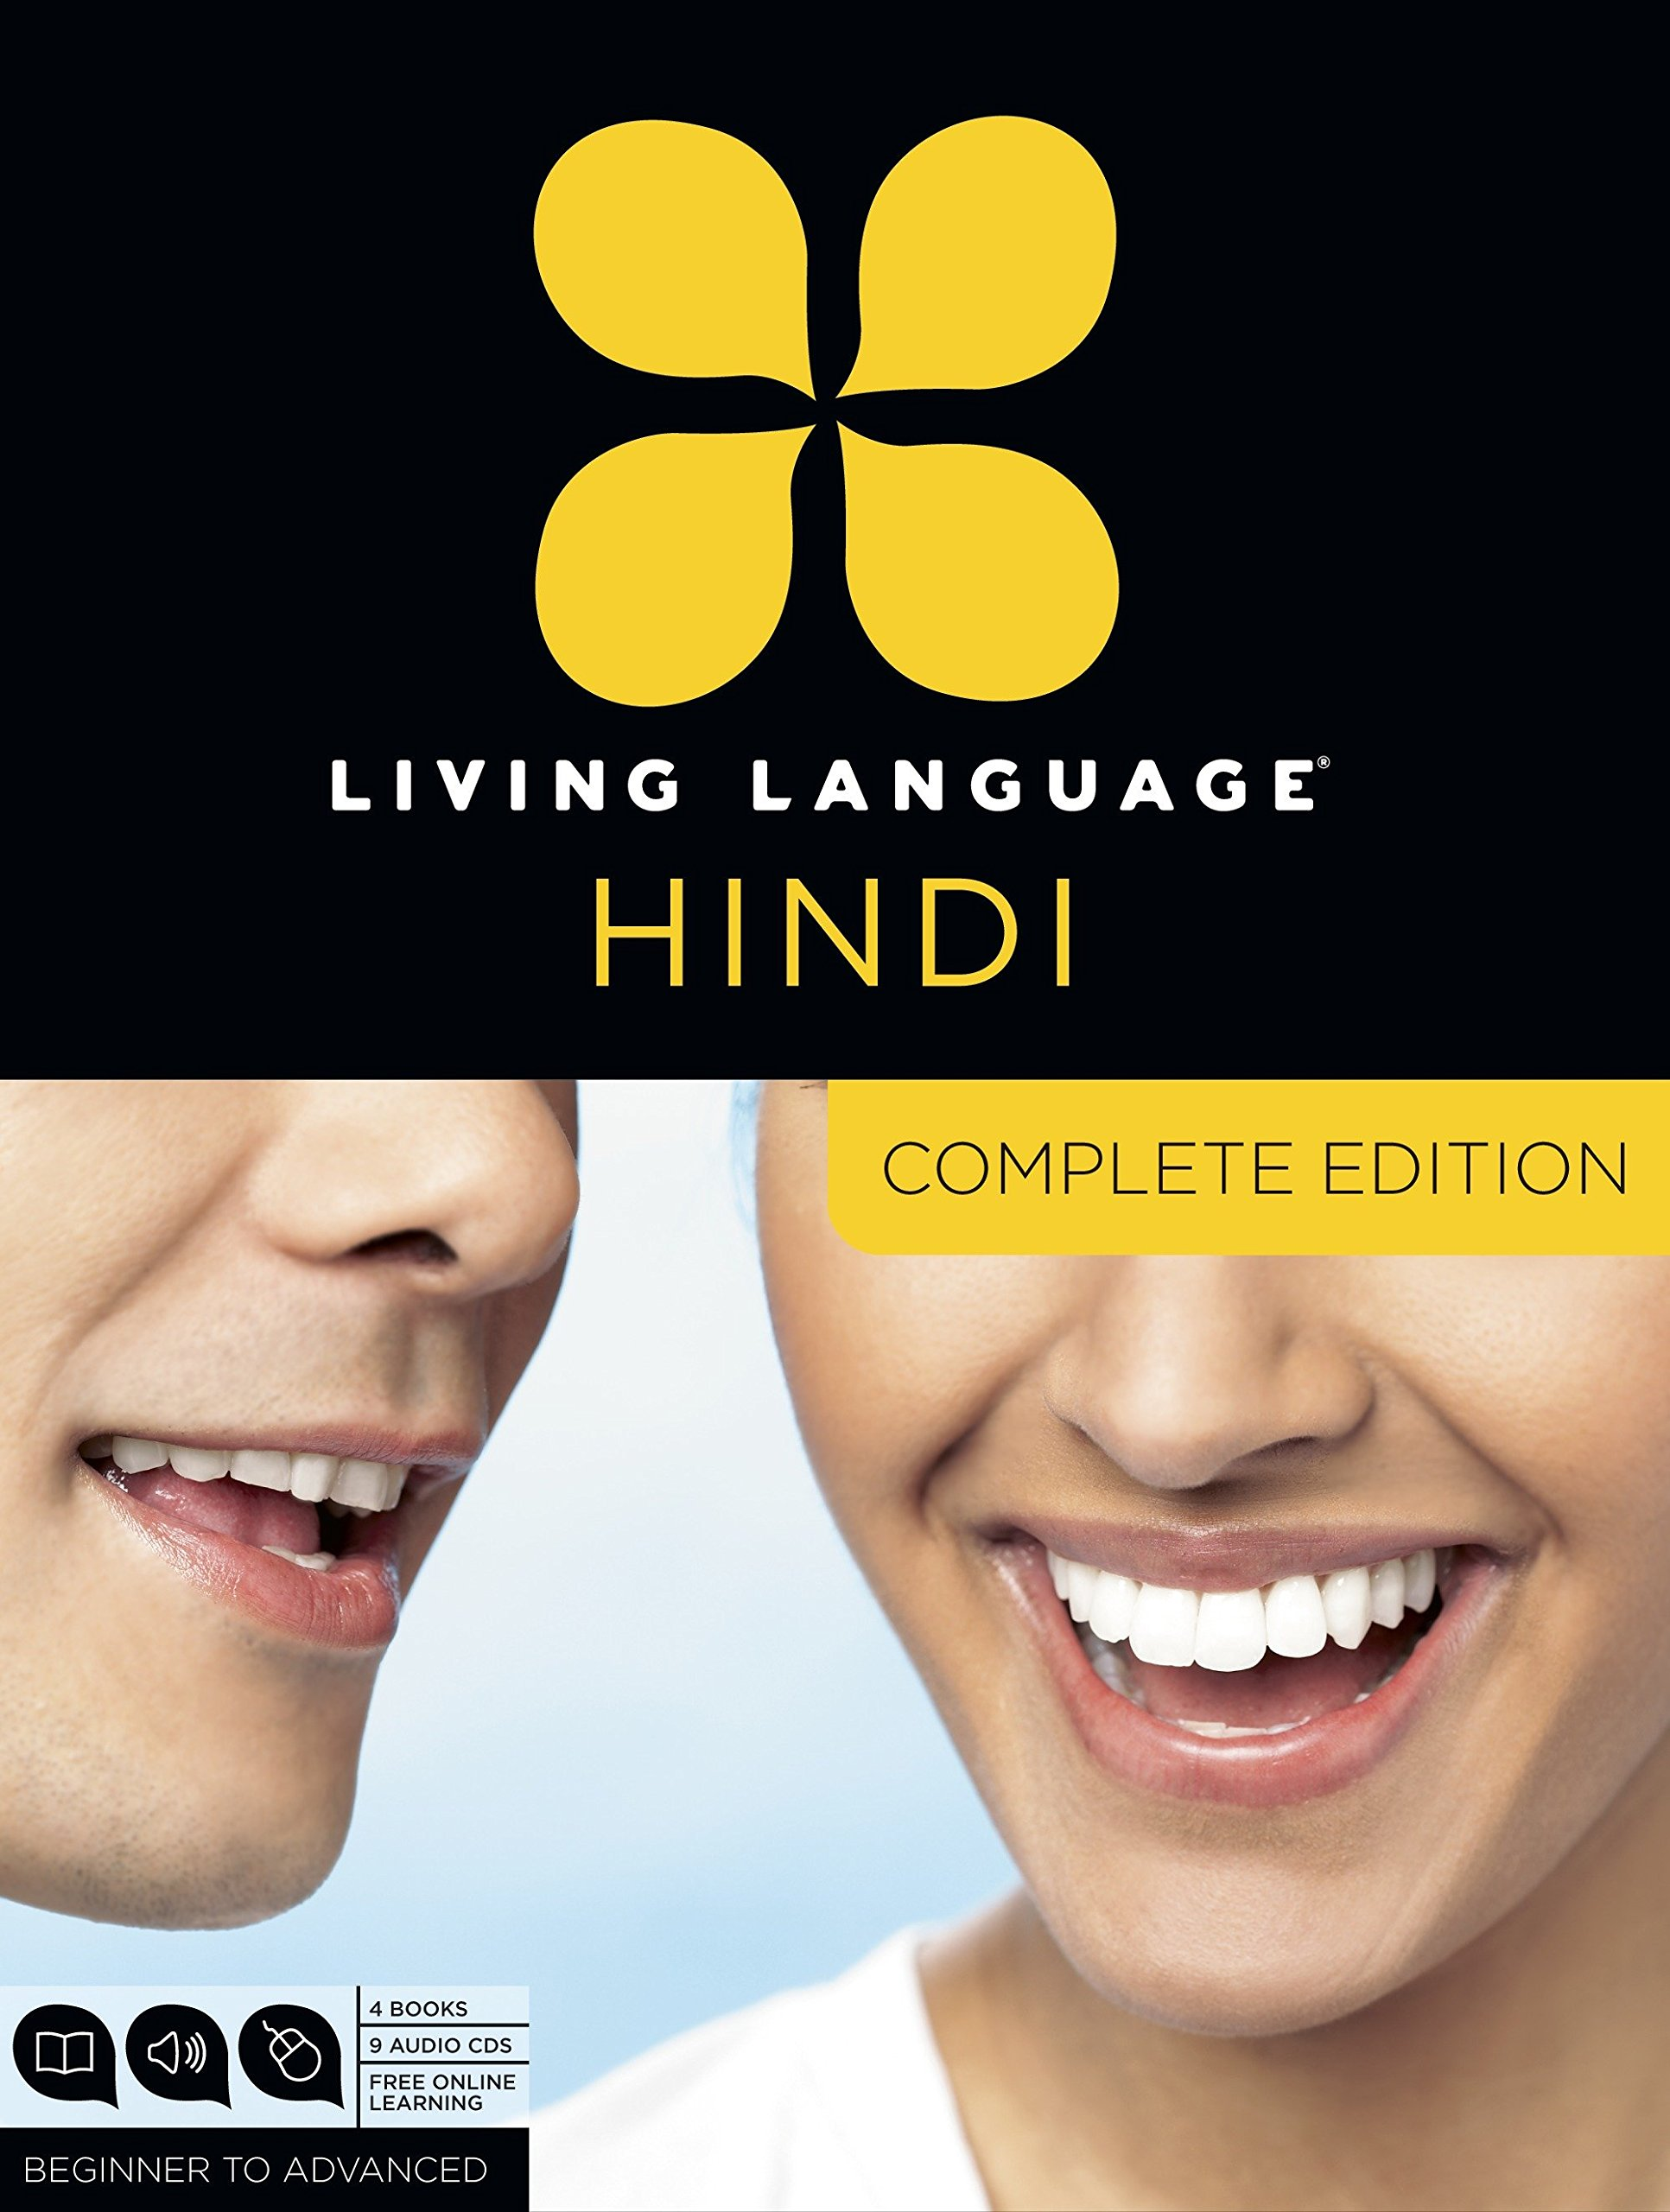 Living Language Hindi, Complete Edition: Beginner through advanced course,  including 3 coursebooks, 9 audio CDs, Hindi reading & writing guide, and